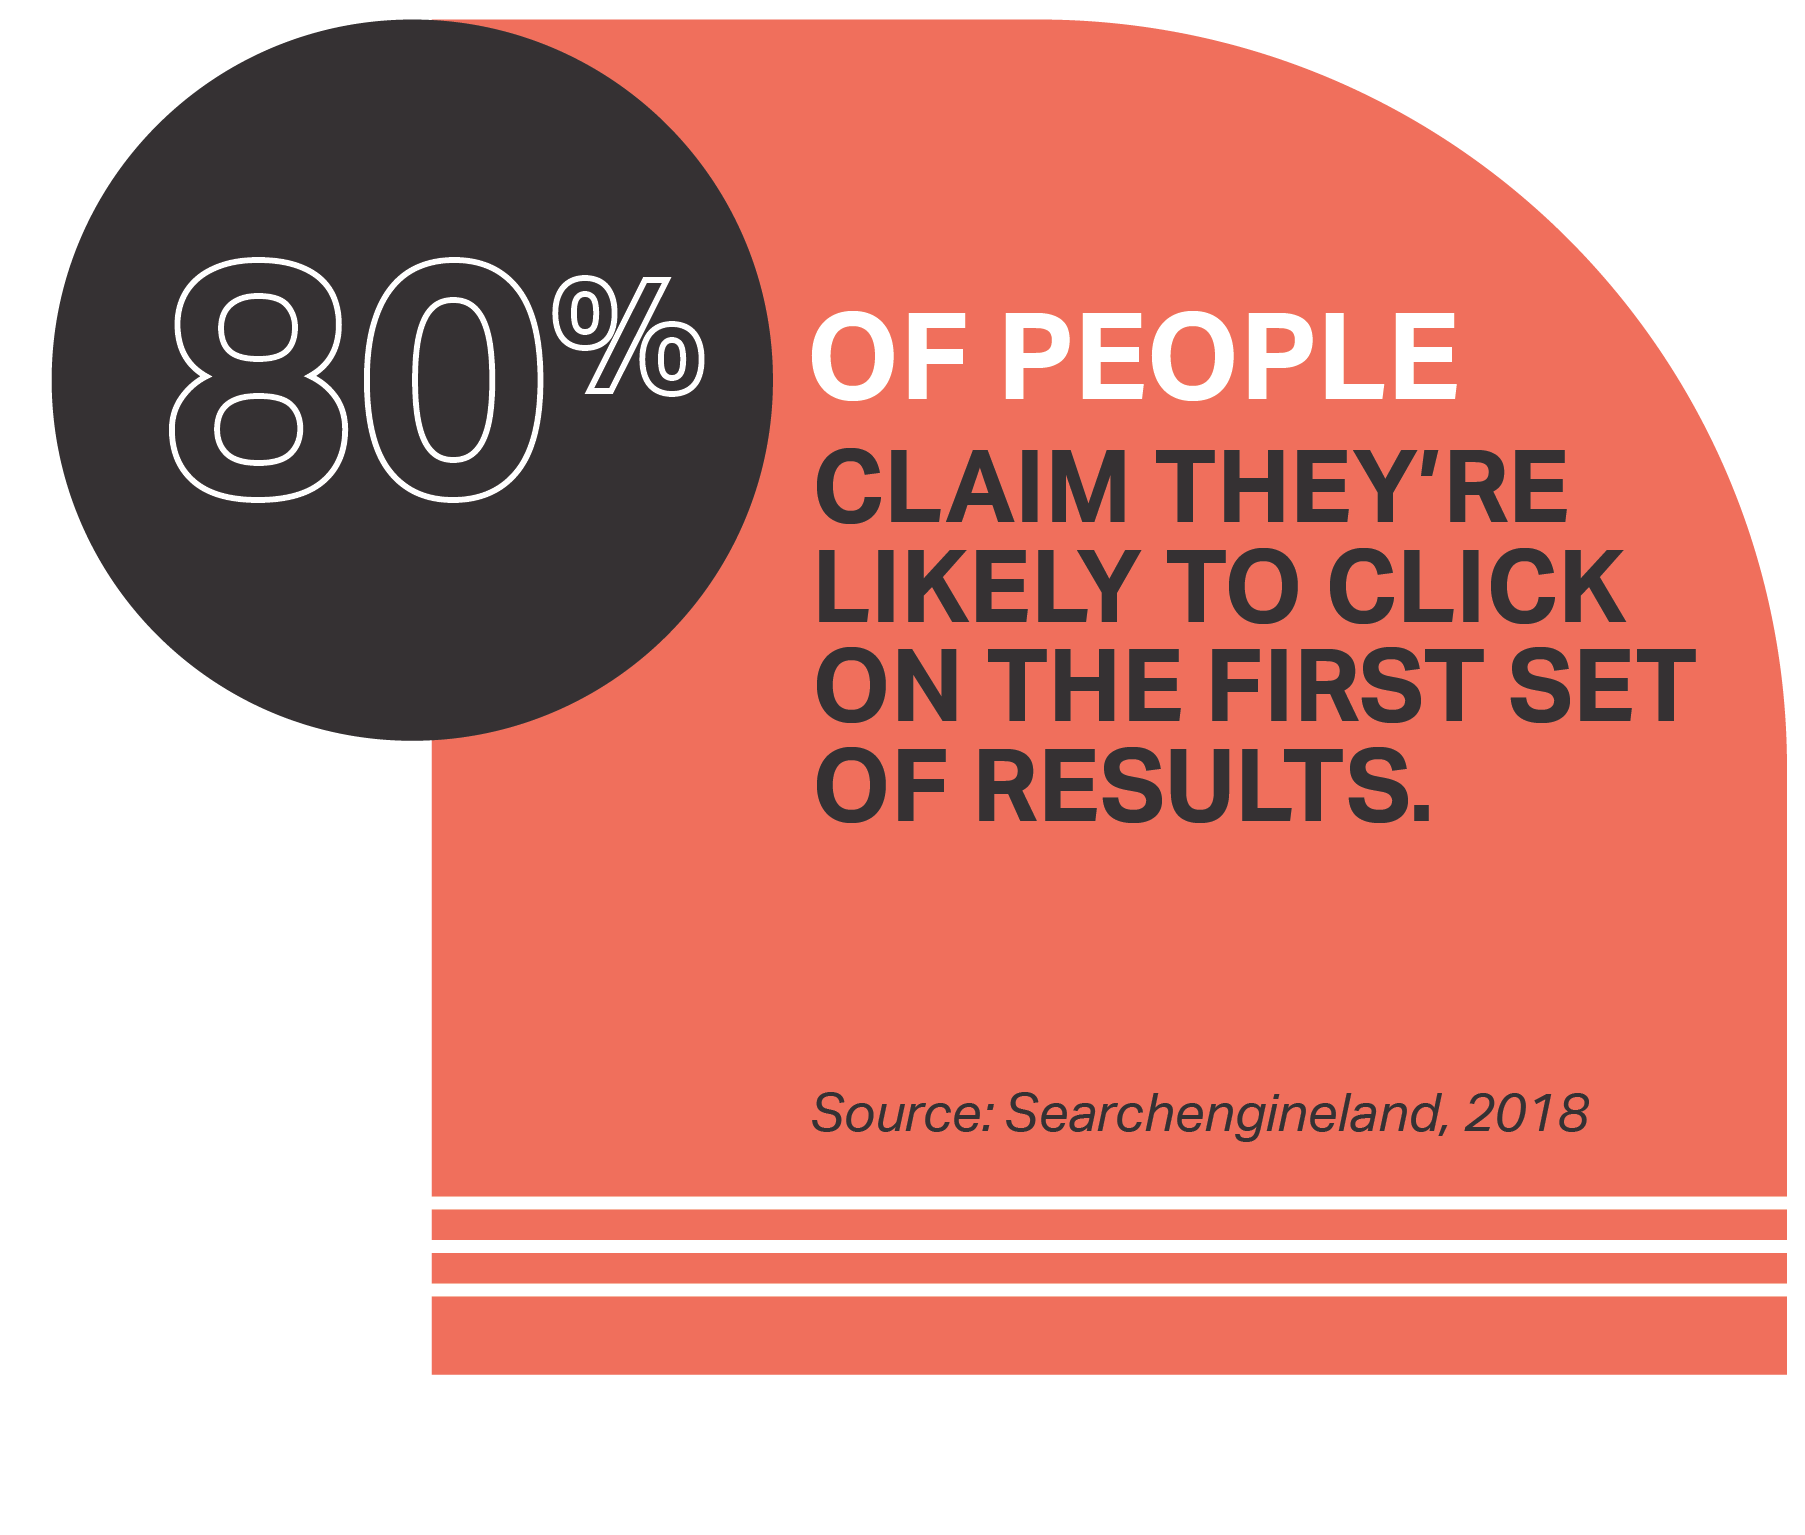 80% of people claim they're likely to click on the first set of results.